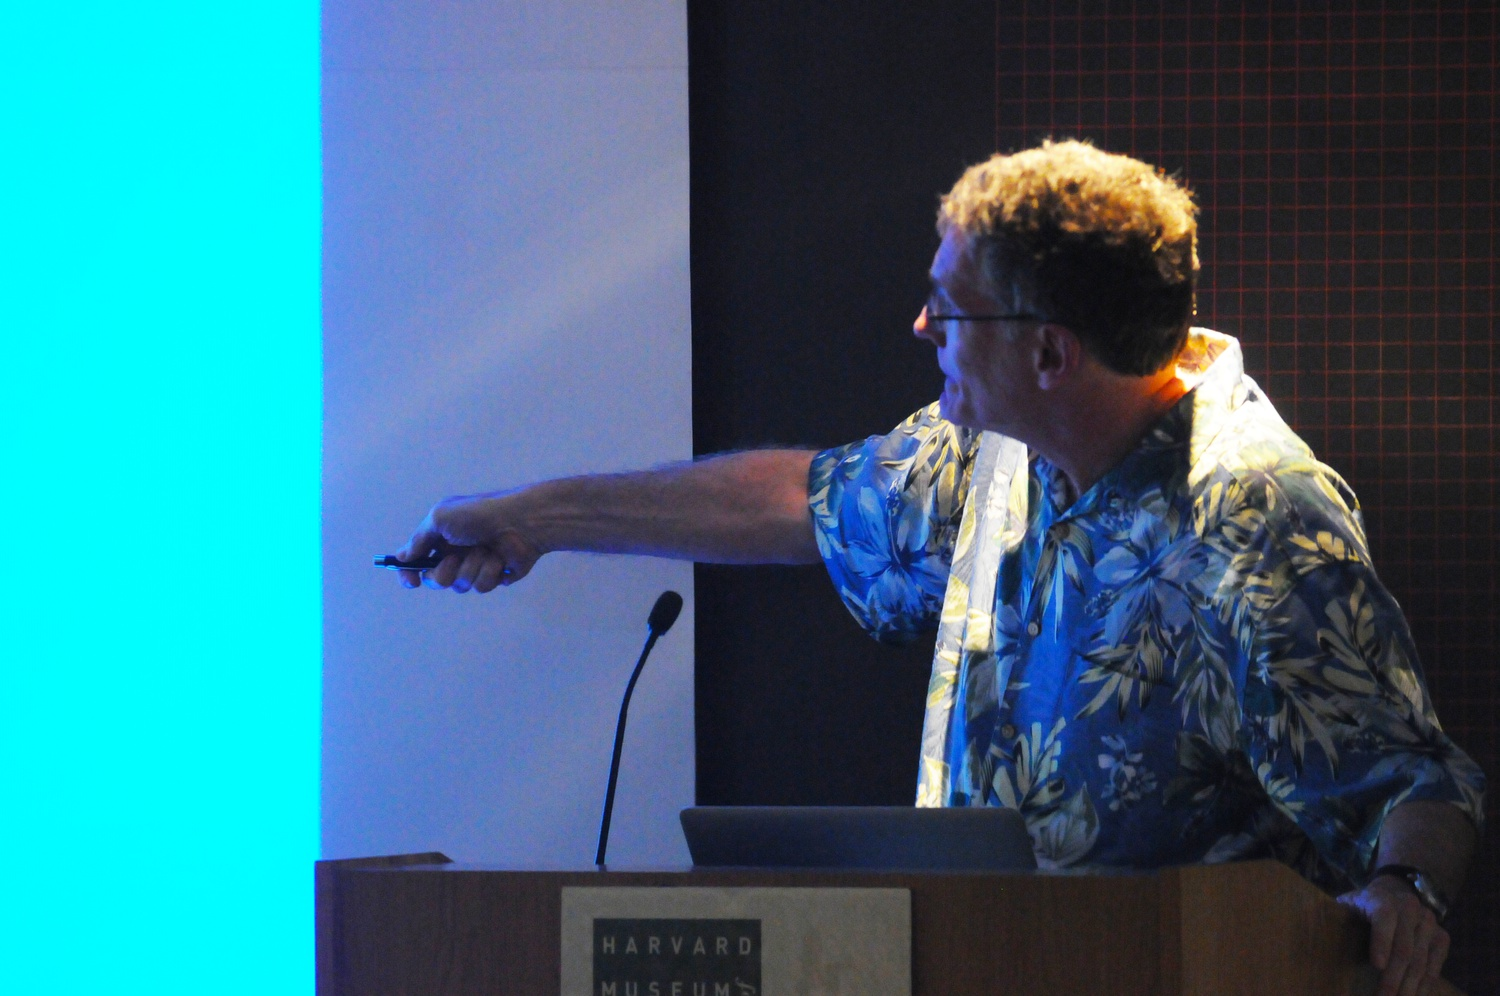 Jonathan B. Losos '84, professor of Organismic and Evolutionary Biology, explains the ecological significance of islands and their role in understanding evolution. The talk took place in a packed Geological Lecture Hall and was part of the Cambridge Science Festival, happening from April 17-26.